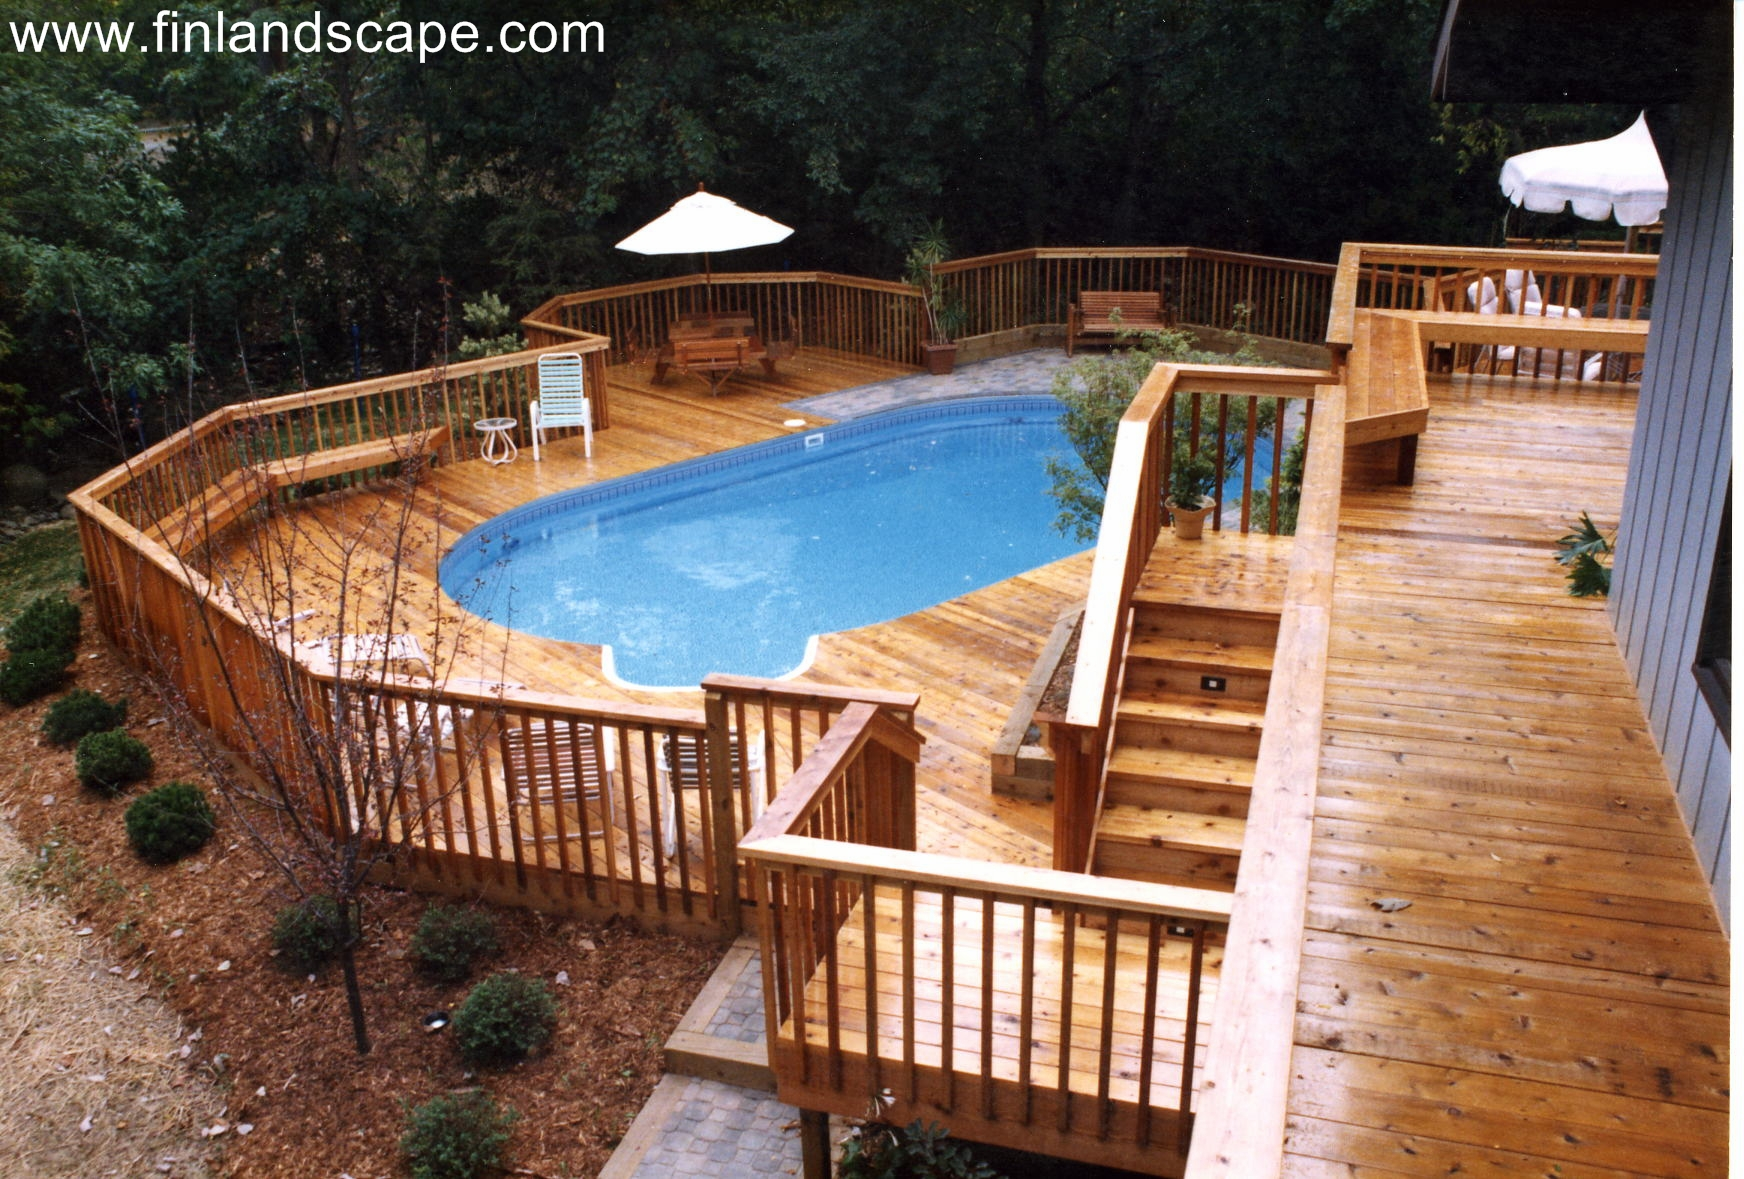 Swimming Pools & Decks